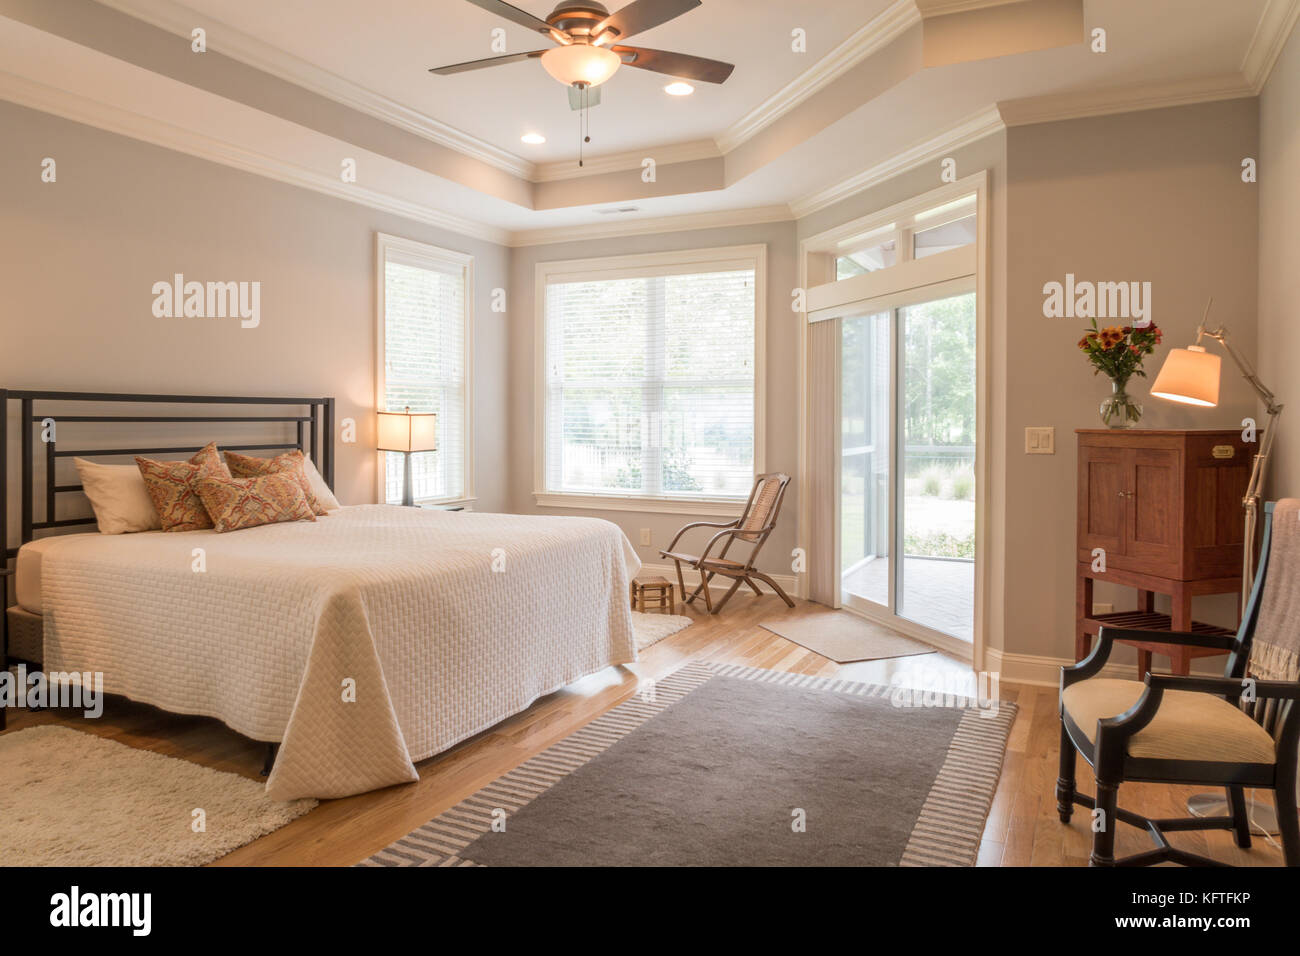 Upscale Ceiling Fan Upscale Residential Bedroom Usa Stock Photo 164652314 Alamy